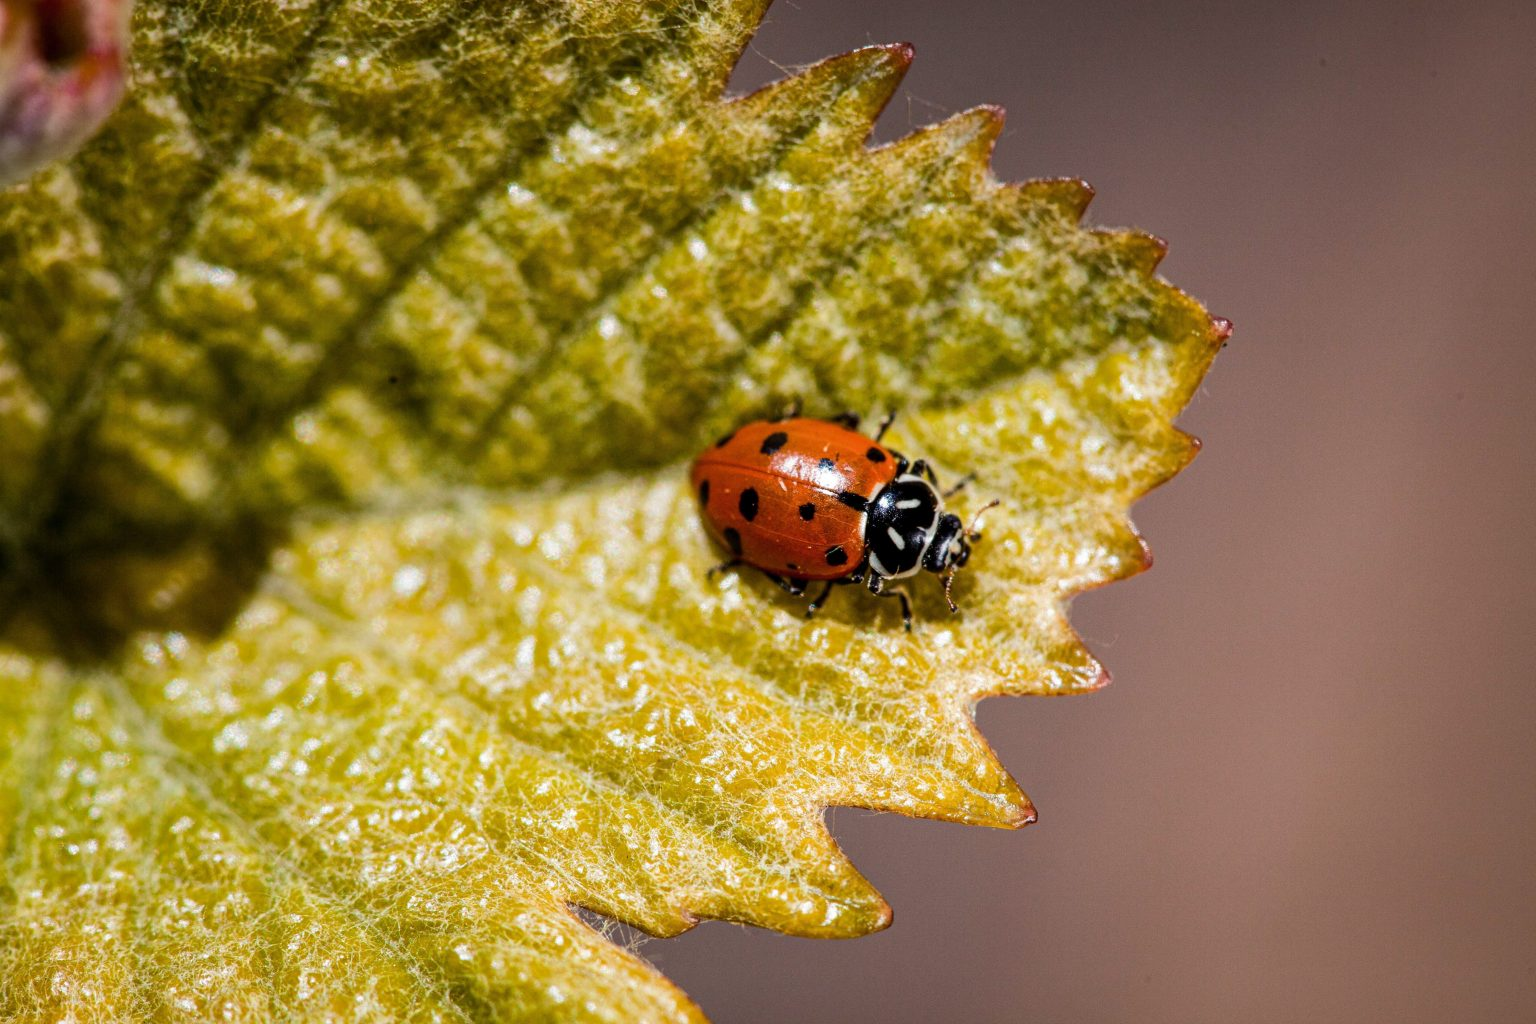 Ladybug in the vineyard